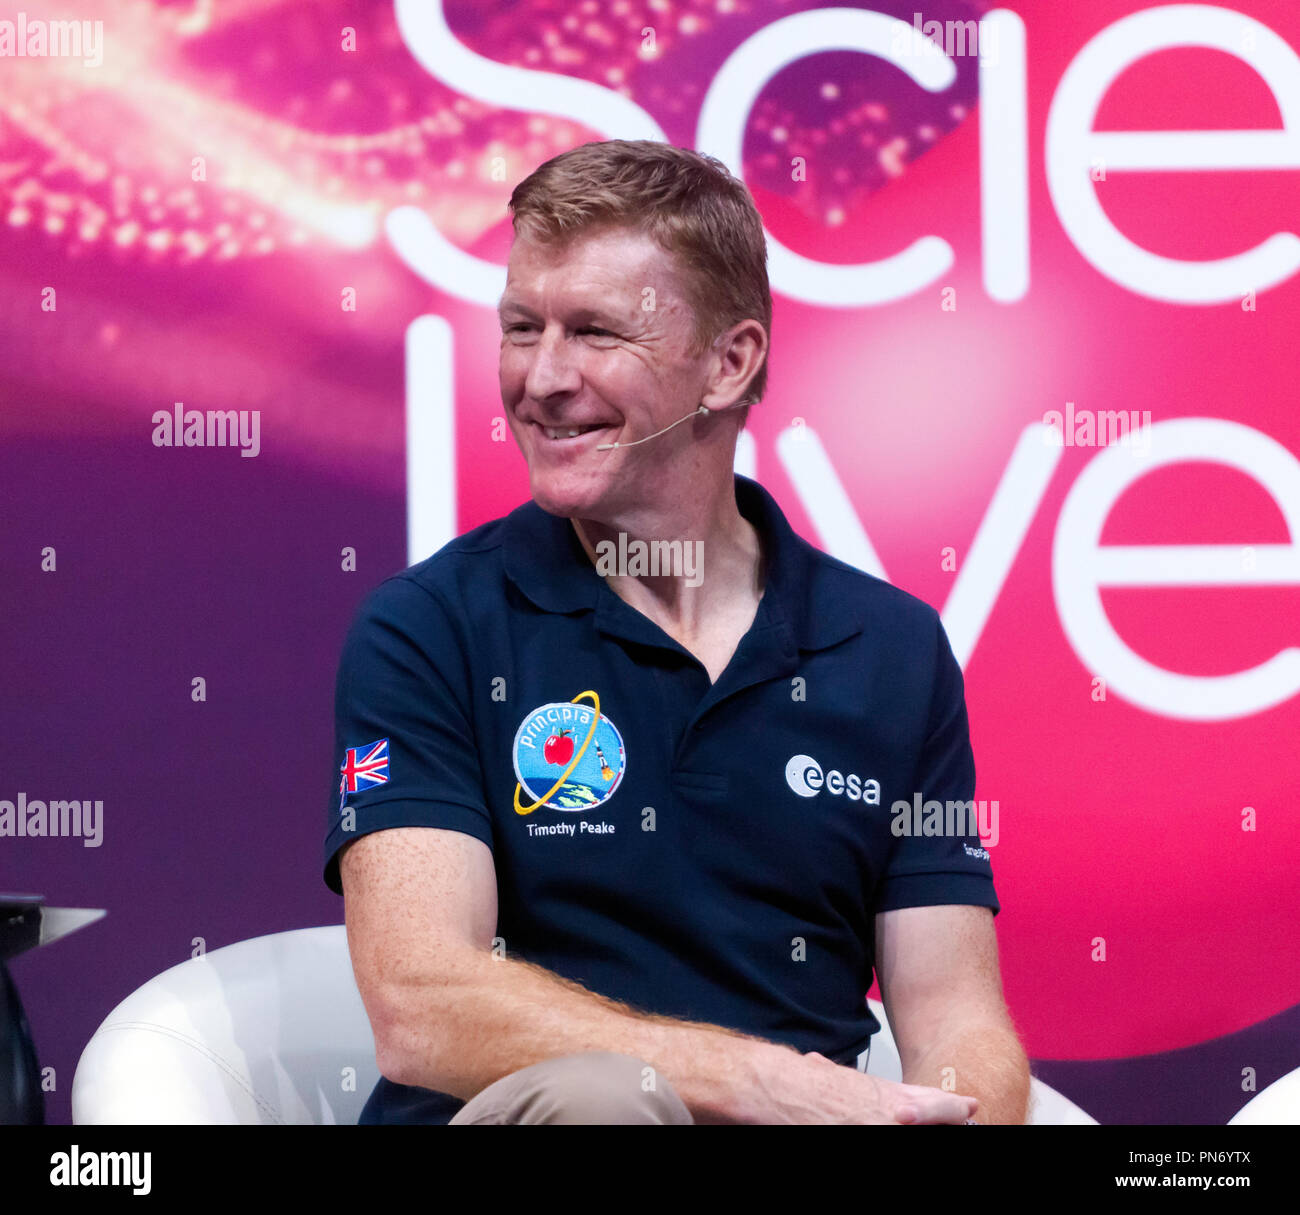 Astronaut Tim Peak participating in a talk about life in Space and the wild corners of Earth on the main stage at New Scientist Live, ExCel London, UK - Stock Image